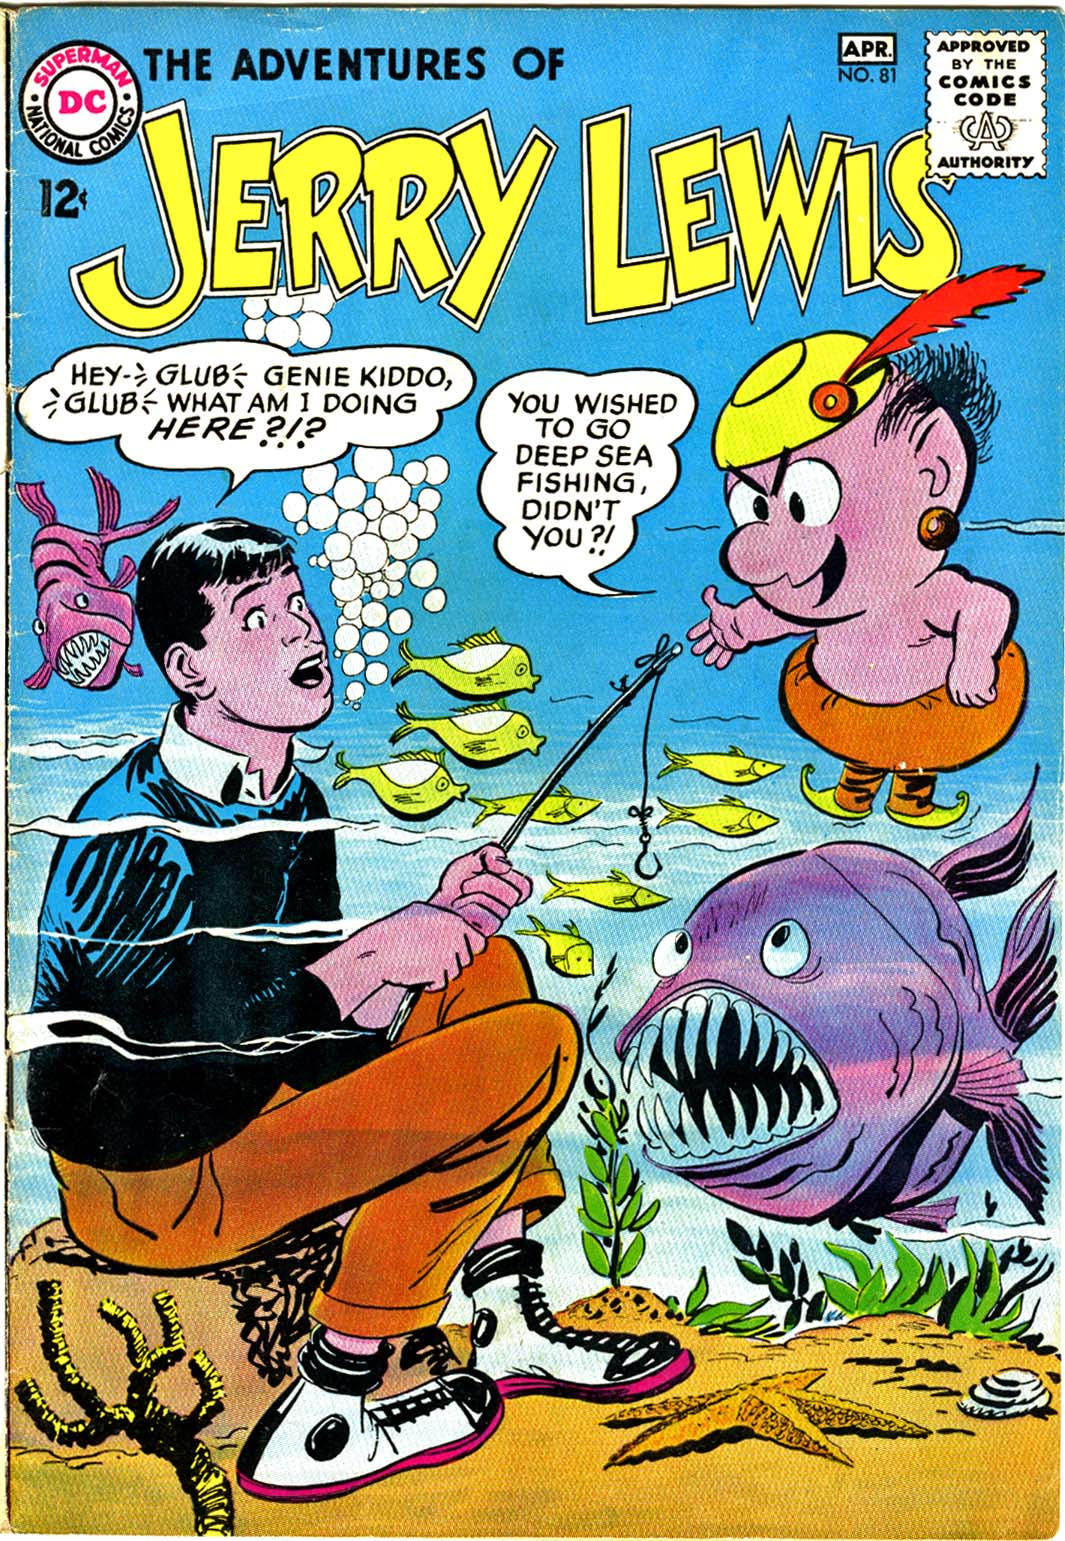 The Adventures of Jerry Lewis 81 Page 1